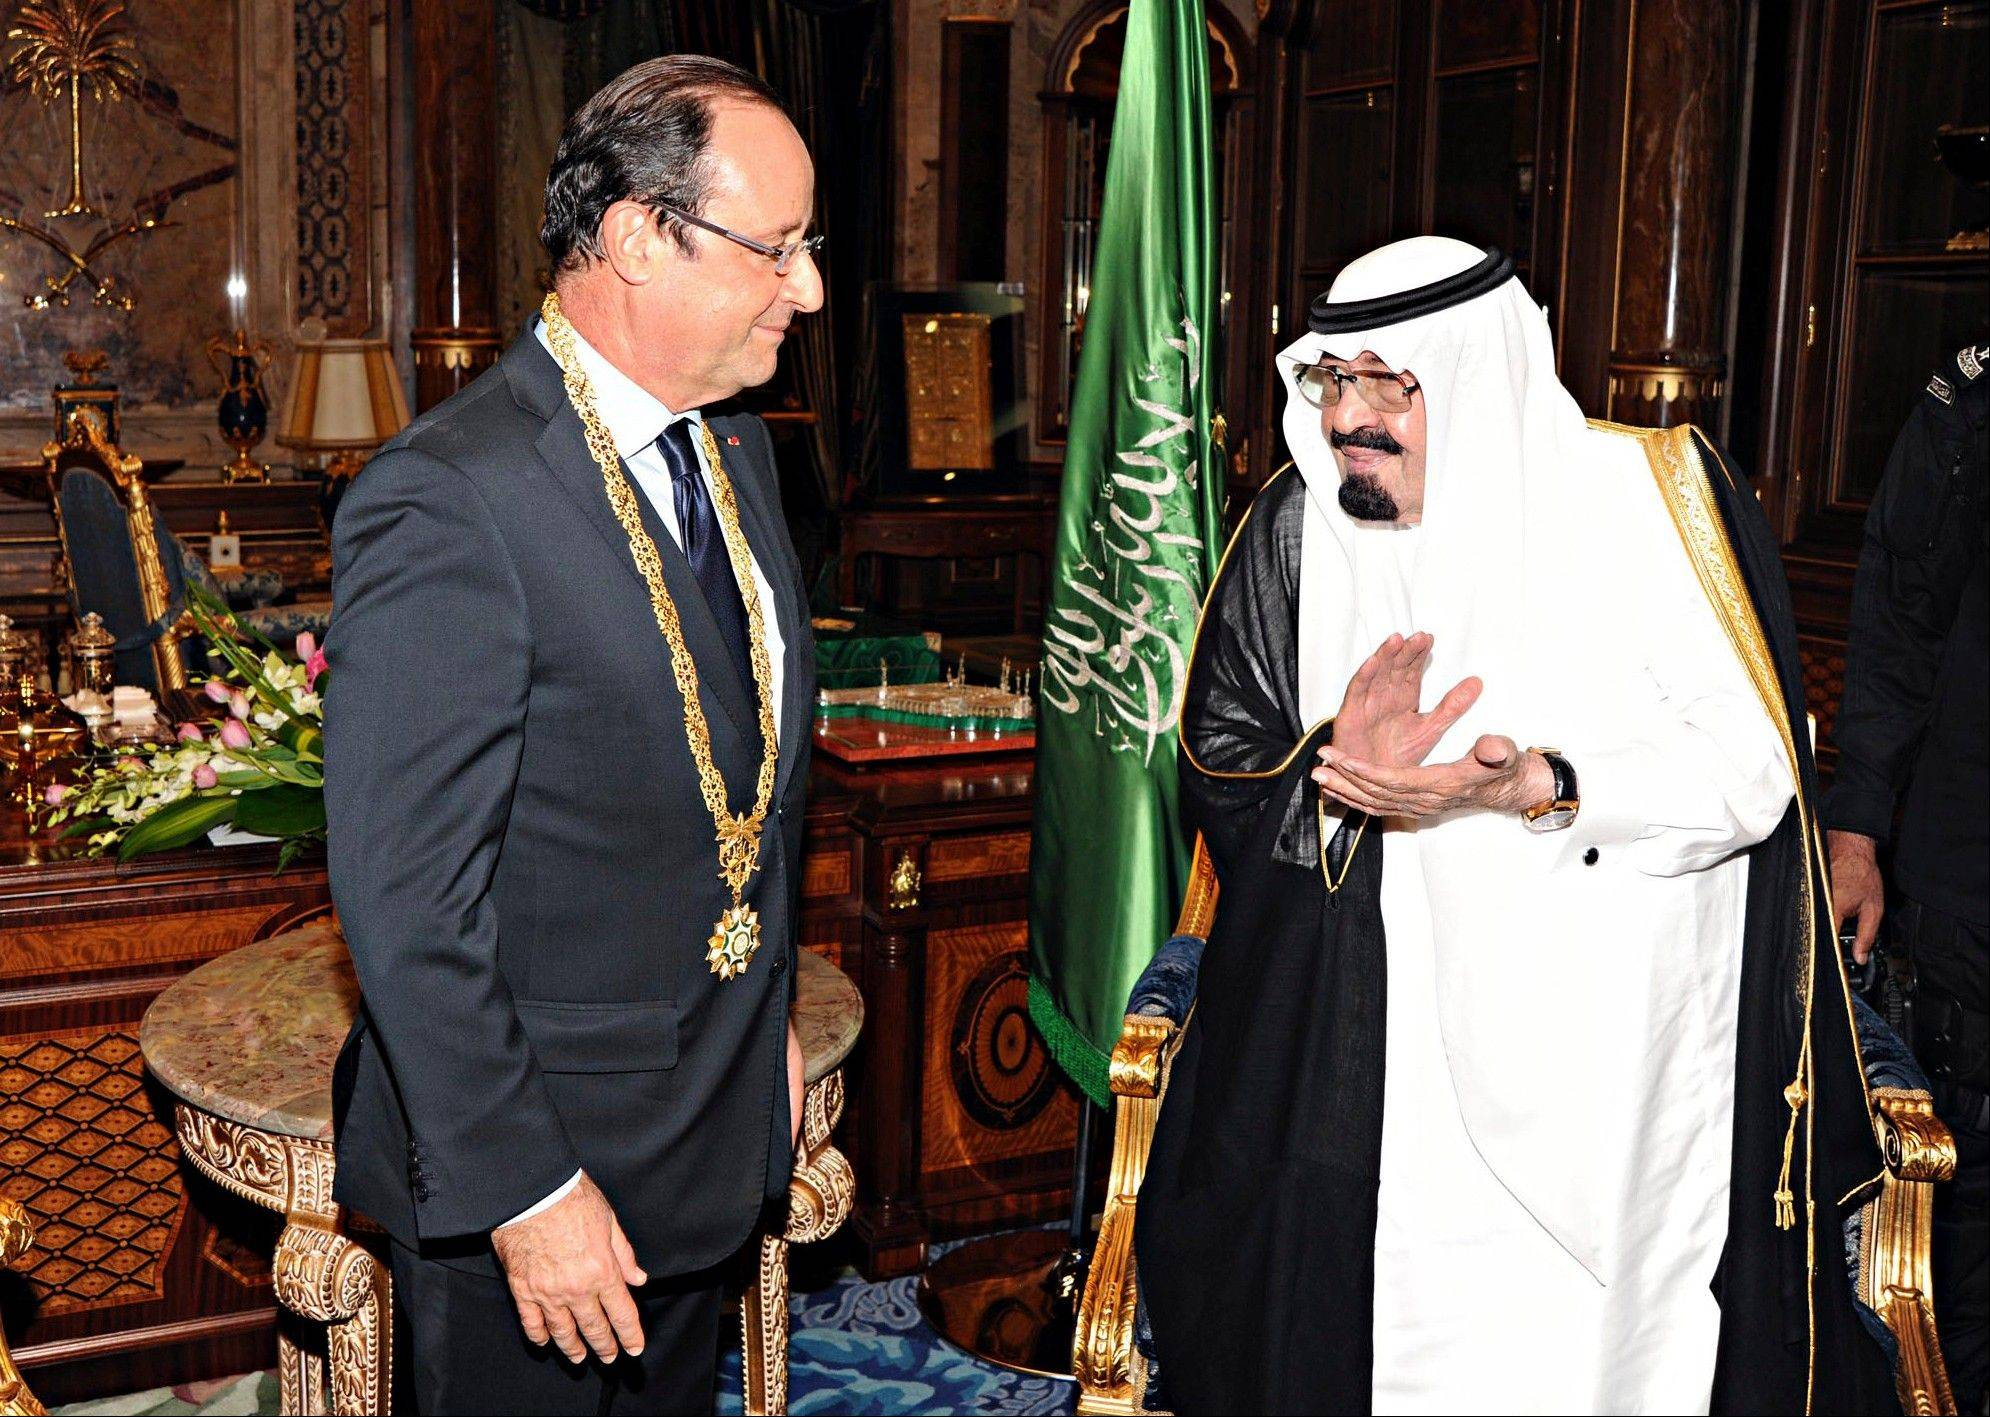 King Abdullah of Saudi Arabia, right, applauds French President Francois Hollande, left, after presenting him with the Order of Merit in Jiddah, Saudi Arabia, Nov. 4.